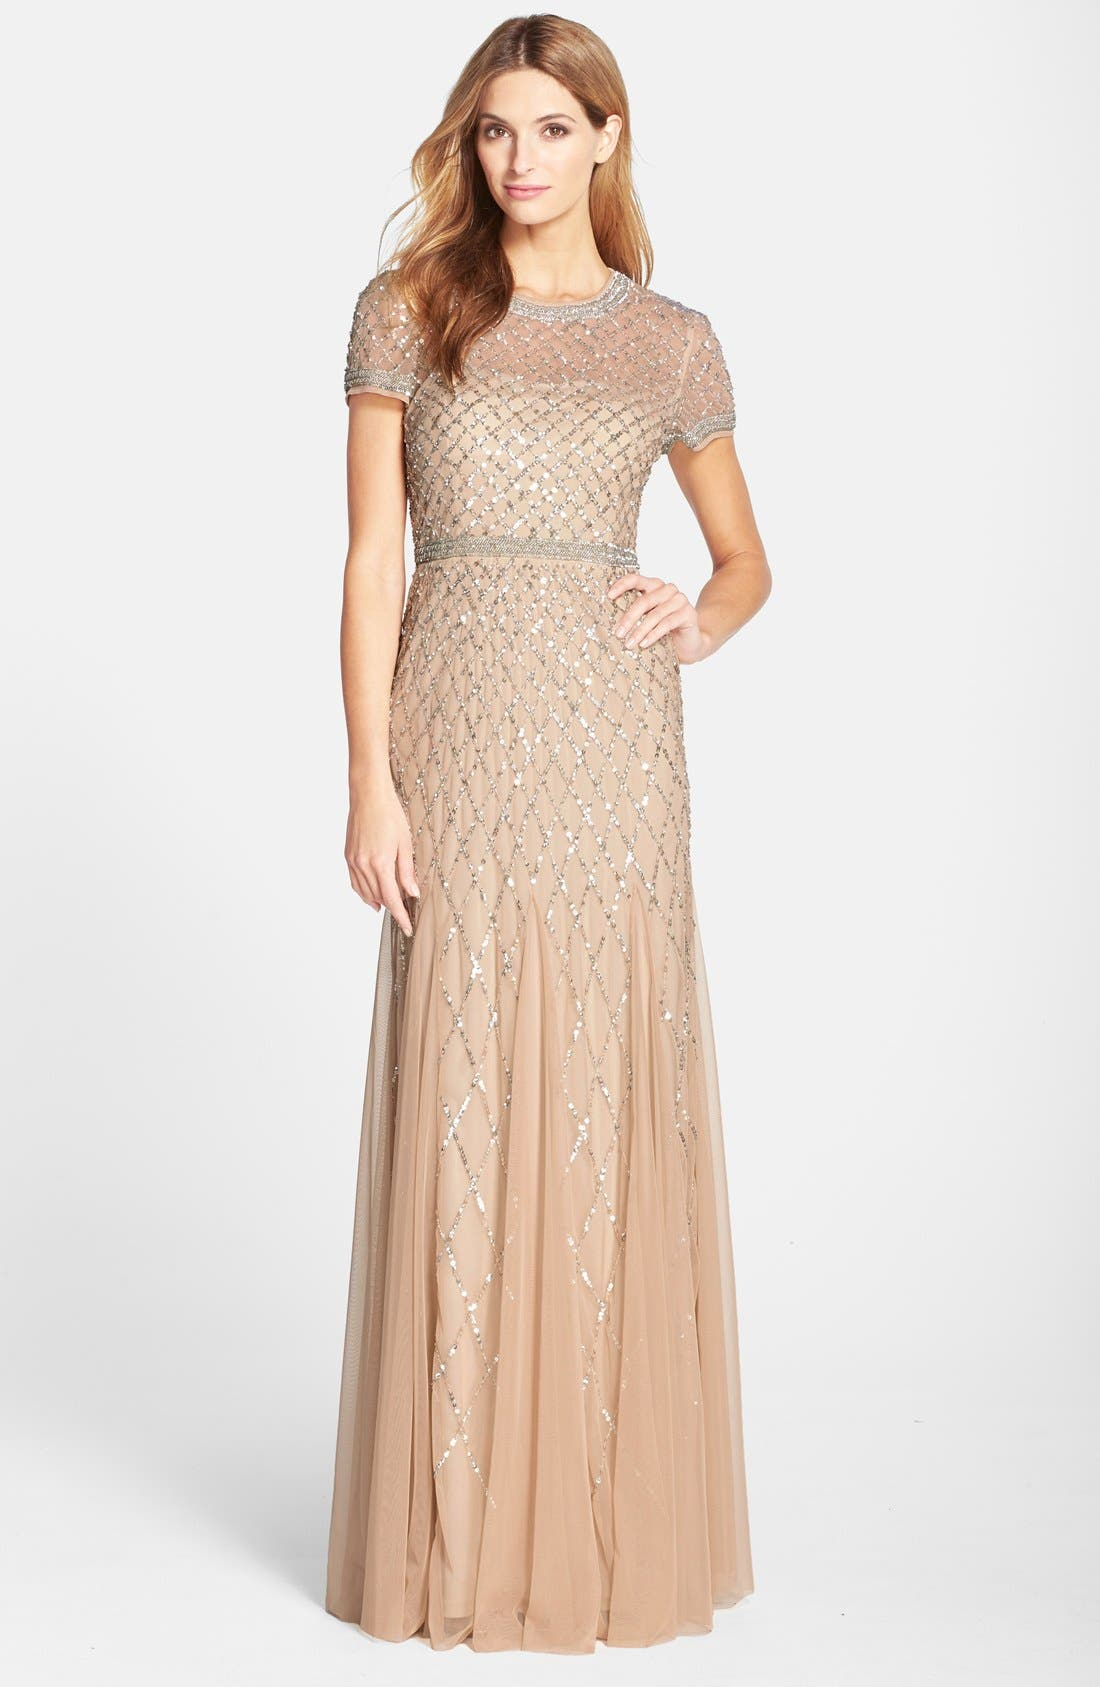 Copper Aline Dress